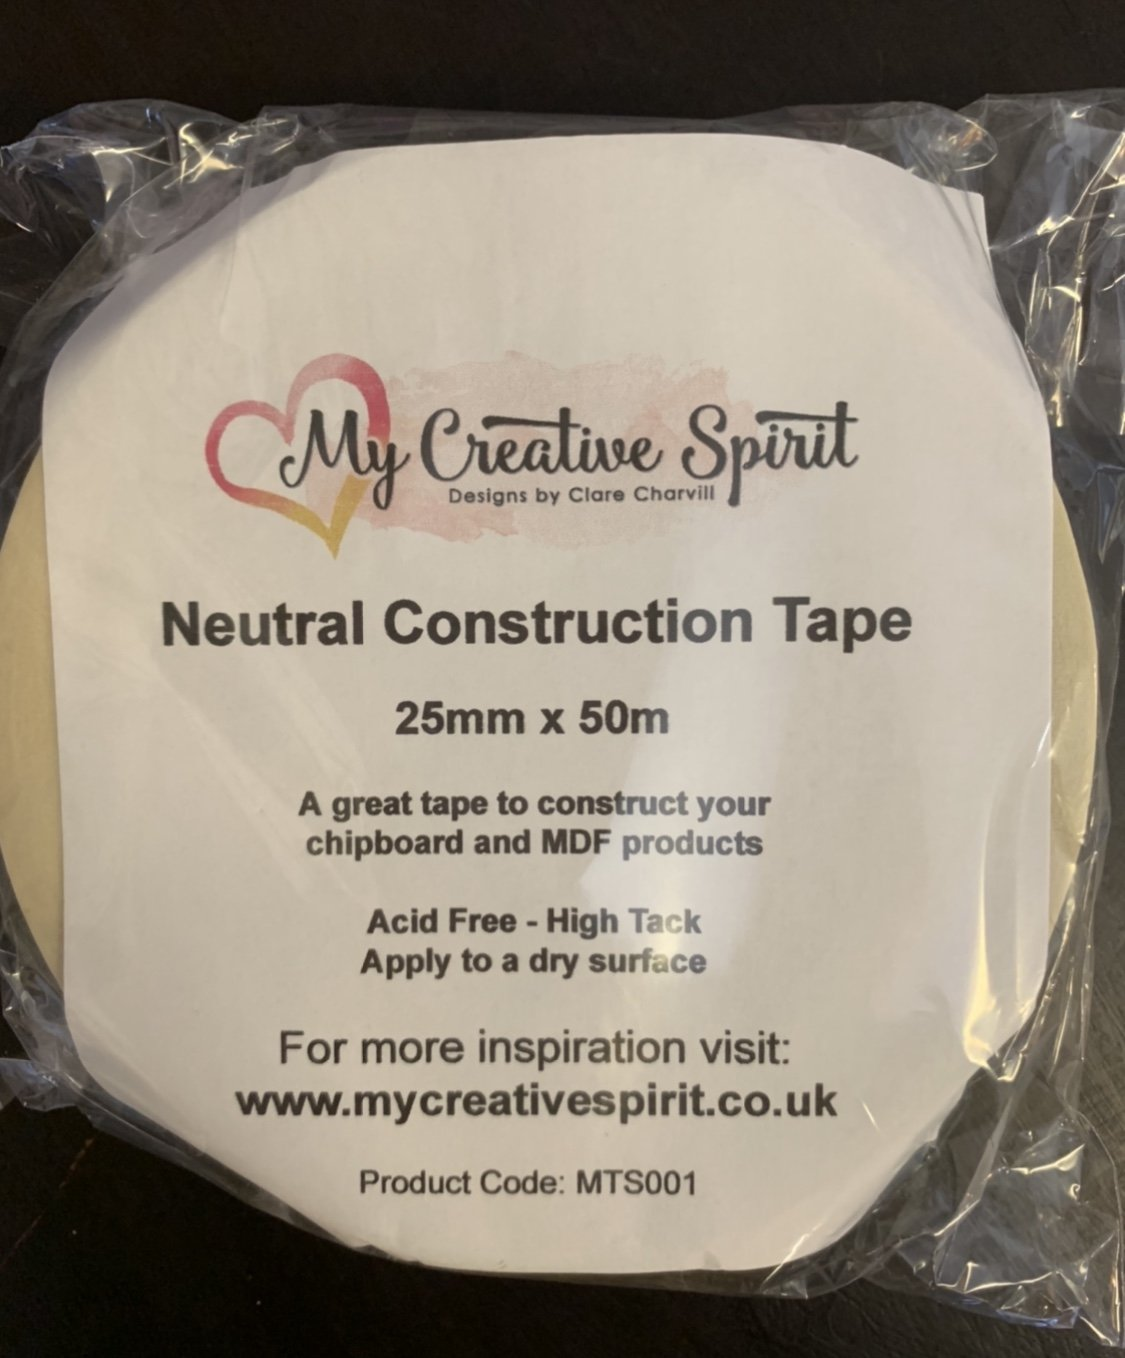 Neutral Construction Tape 25mm x 50m